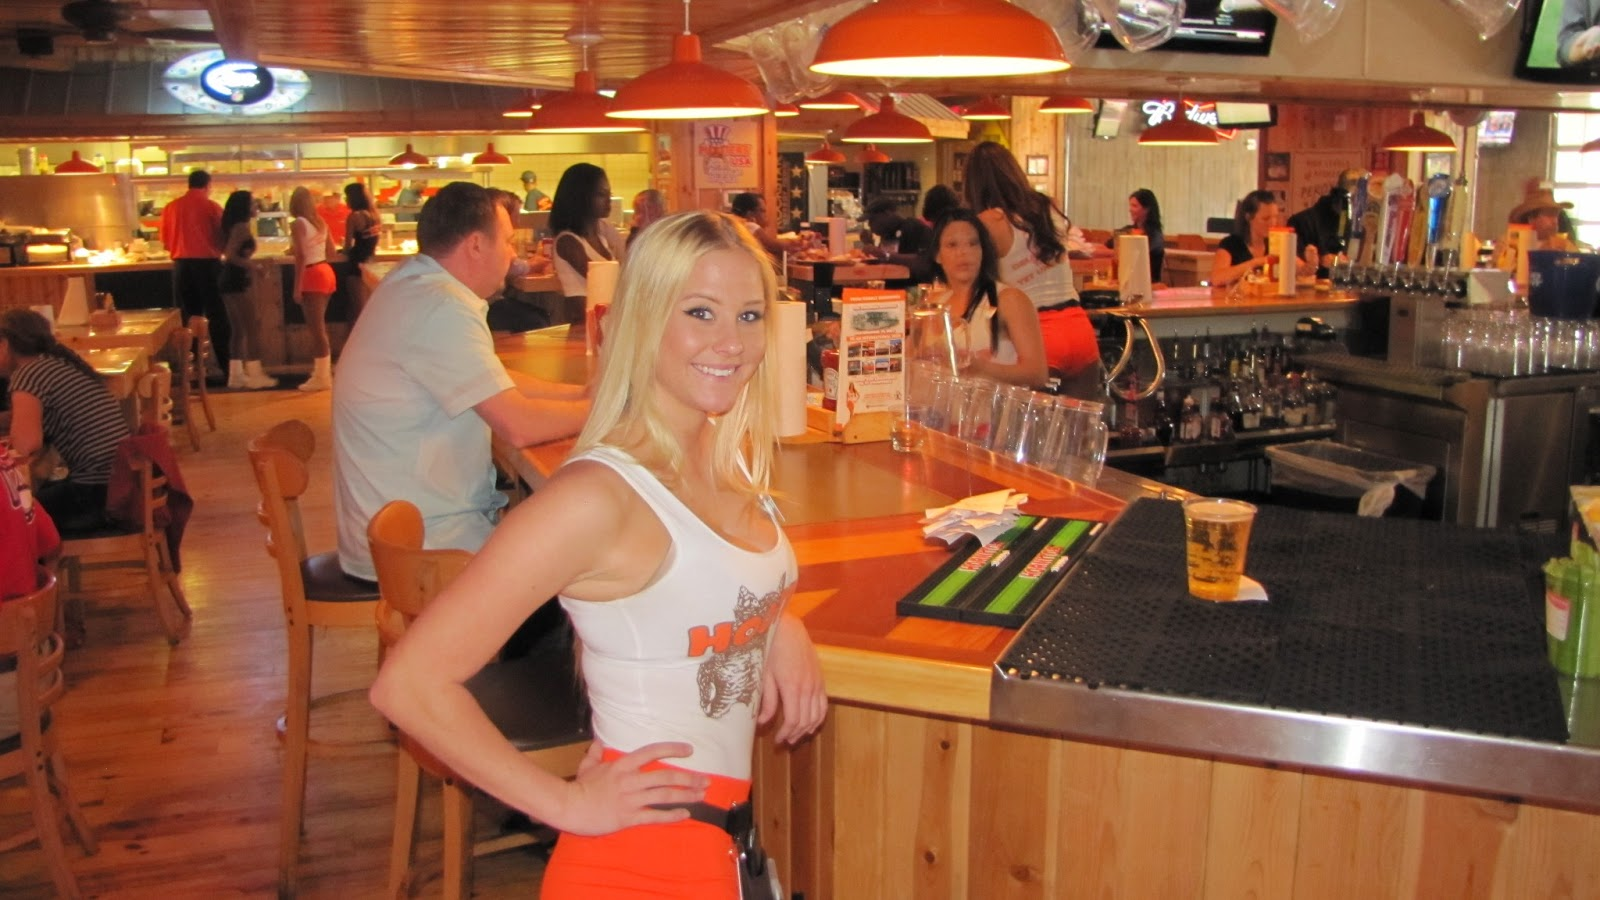 hook up hooters 39 reviews of hooters great service here and the best wings around, if you like the breaded and fried wings we also ordered french fries which are always good.